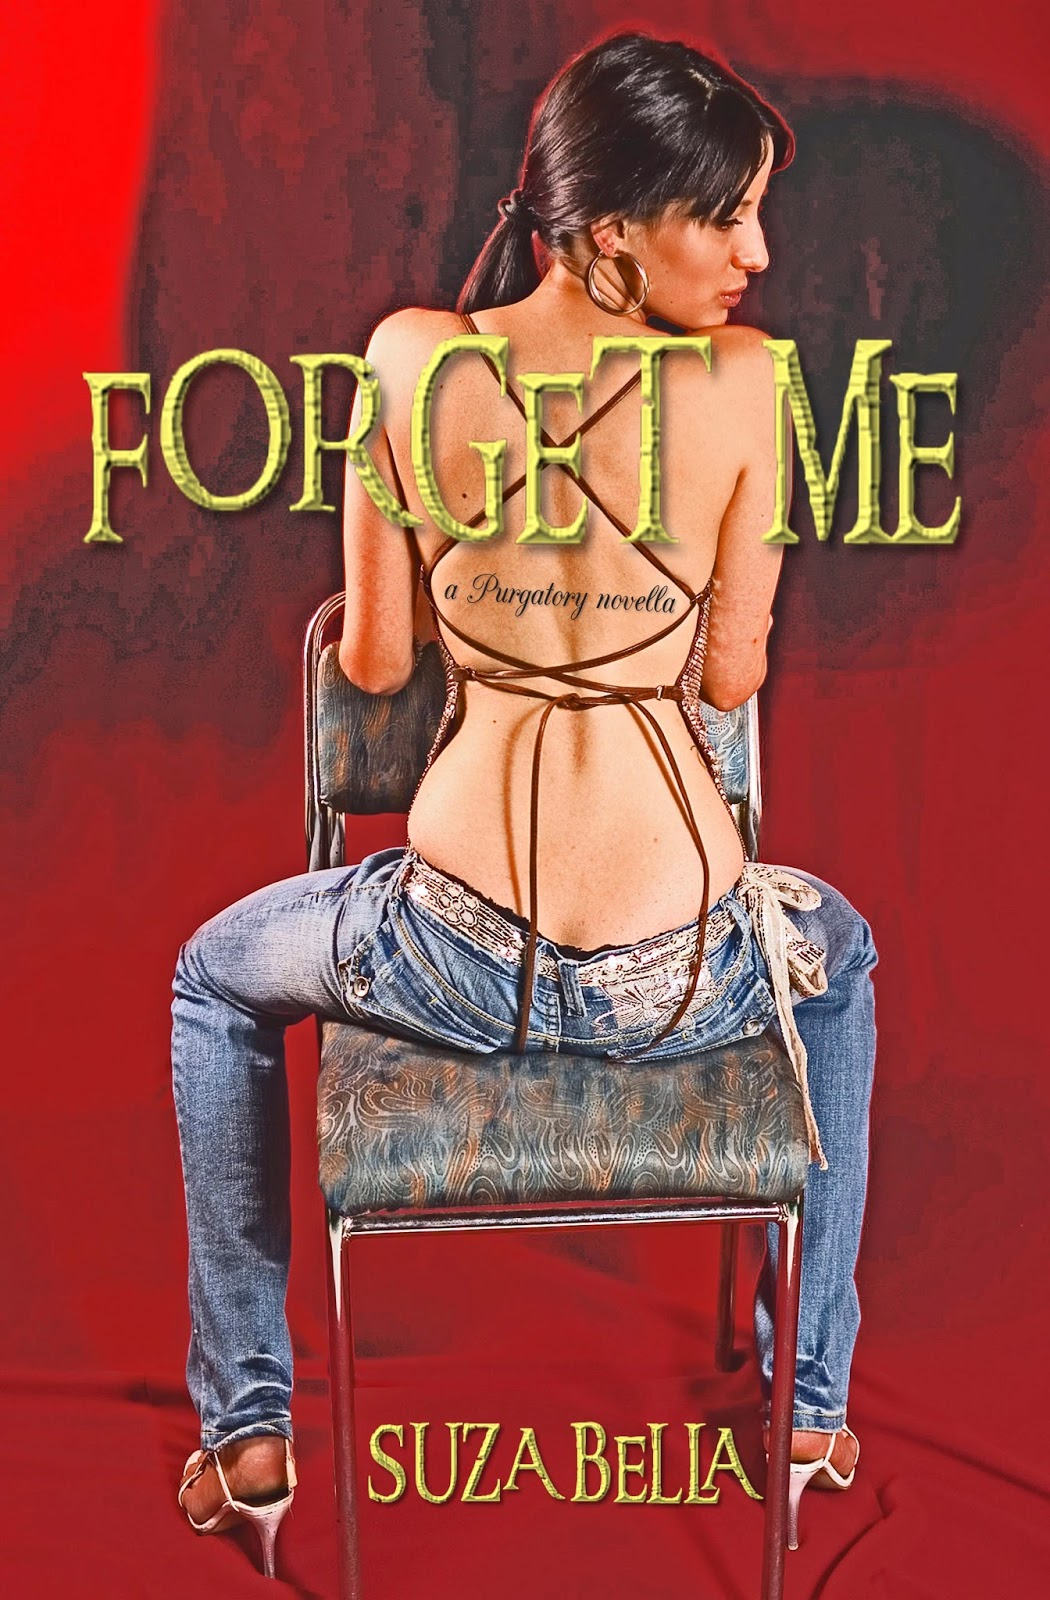 http://www.amazon.com/Forget-Me-Purgatory-Suza-Bella-ebook/dp/B00K4MGEUE/ref=sr_1_10?s=digital-text&ie=UTF8&qid=1400788355&sr=1-10&keywords=susan+stec